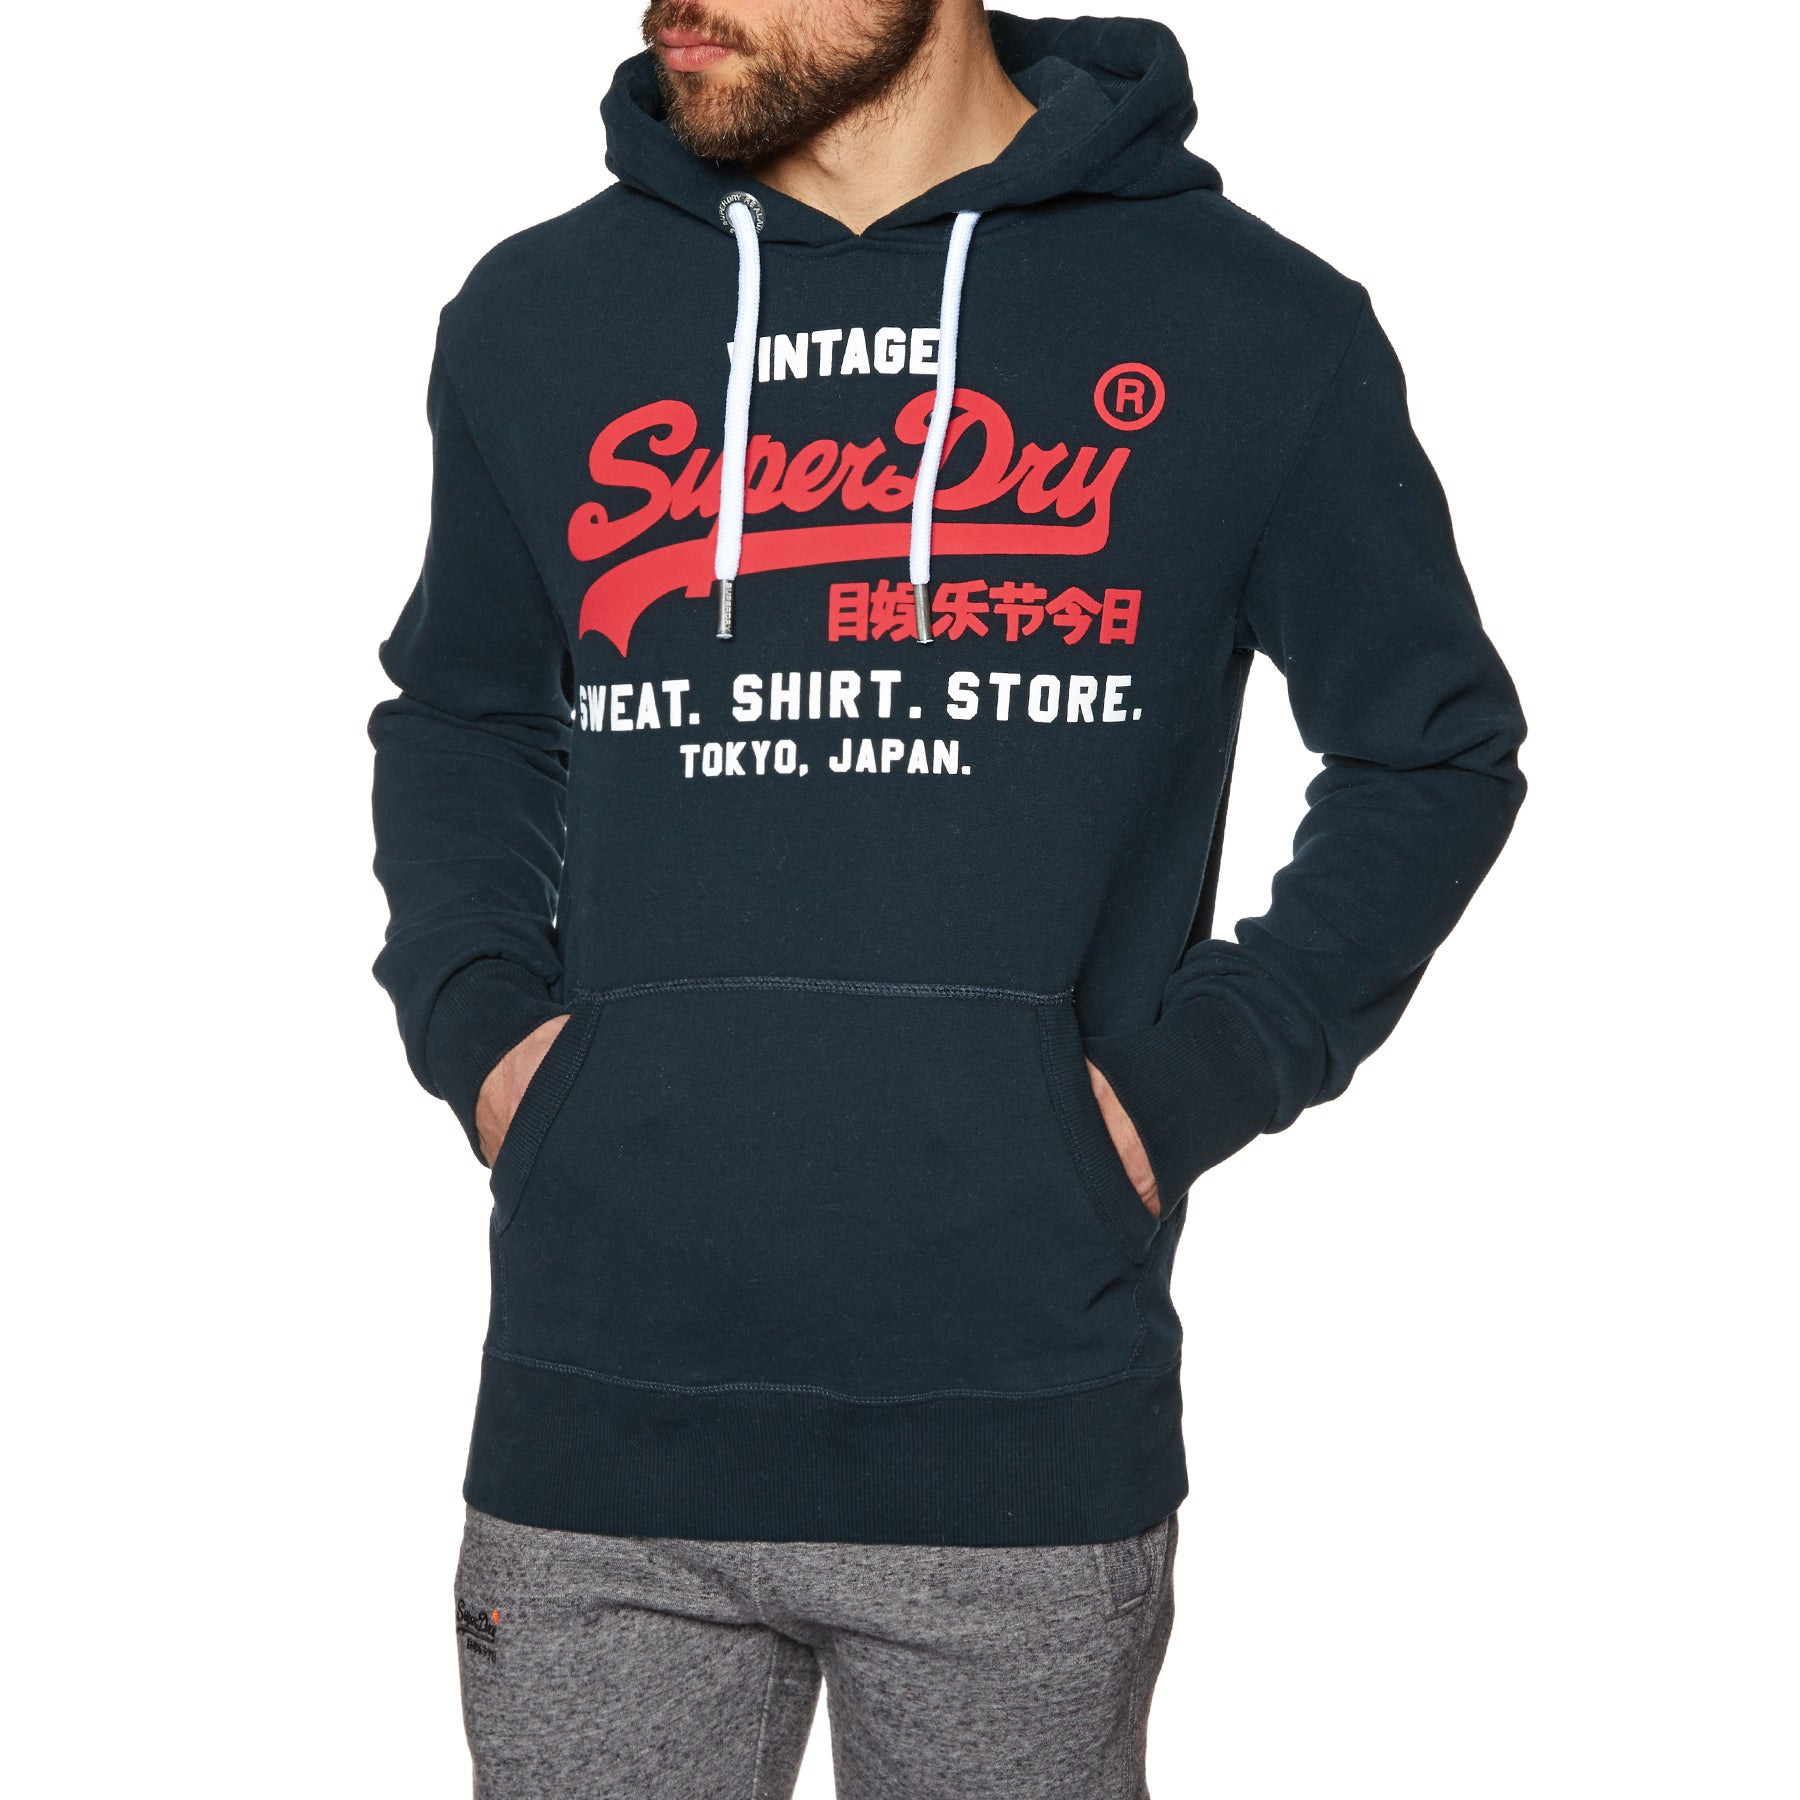 Superdry Duo Sweat Hoody Shirt Shop Available Pullover From n78xnav